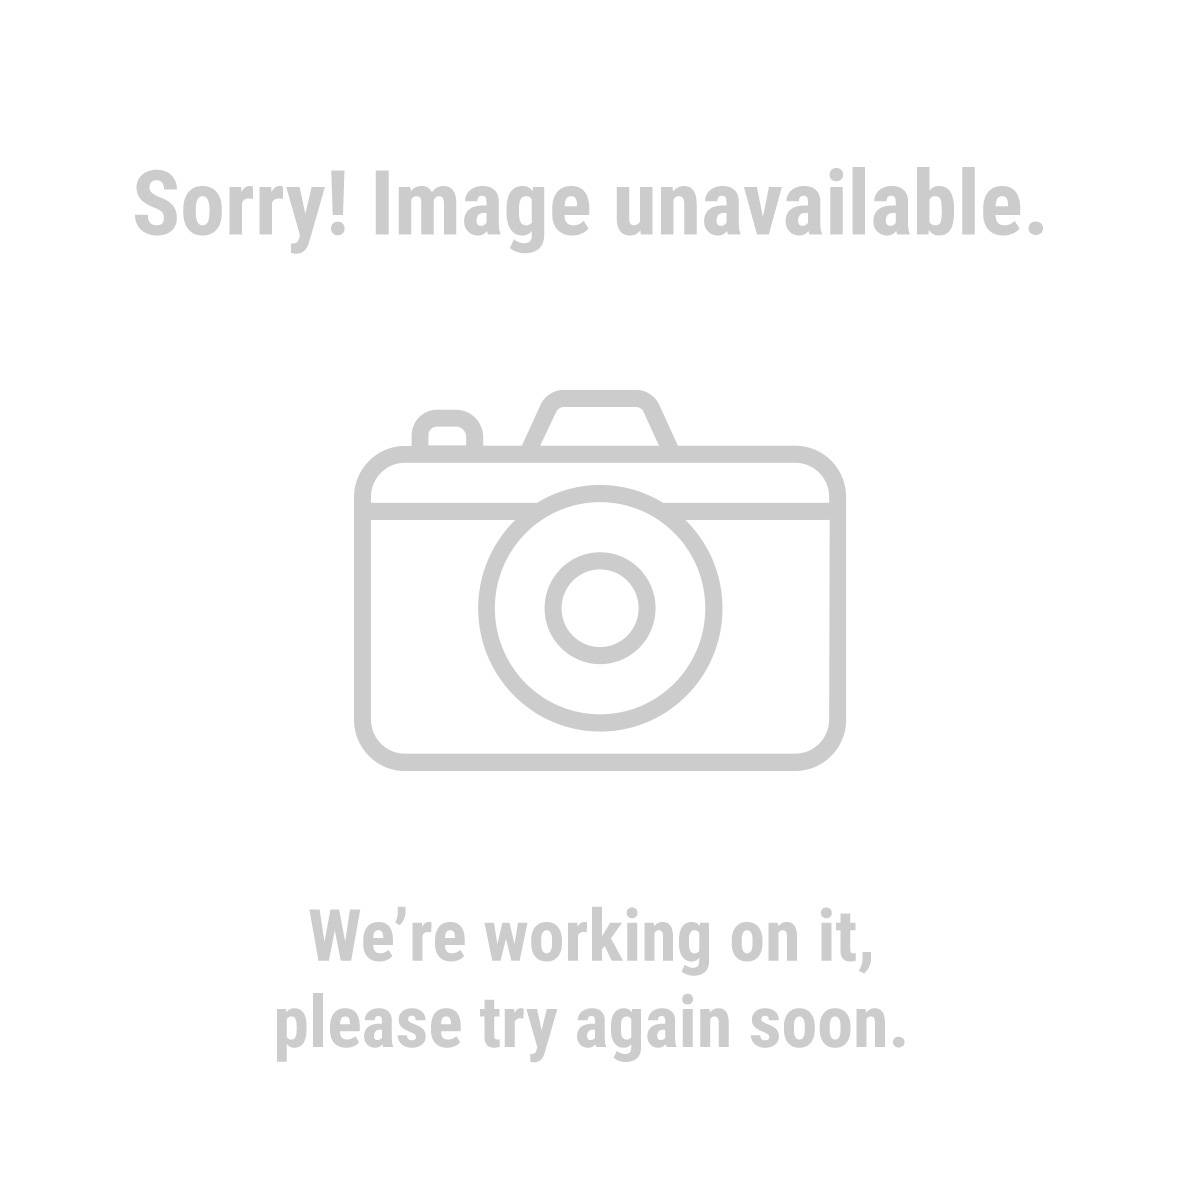 Pittsburgh® 96416 13 Piece Metric Ball End Hex Key Set